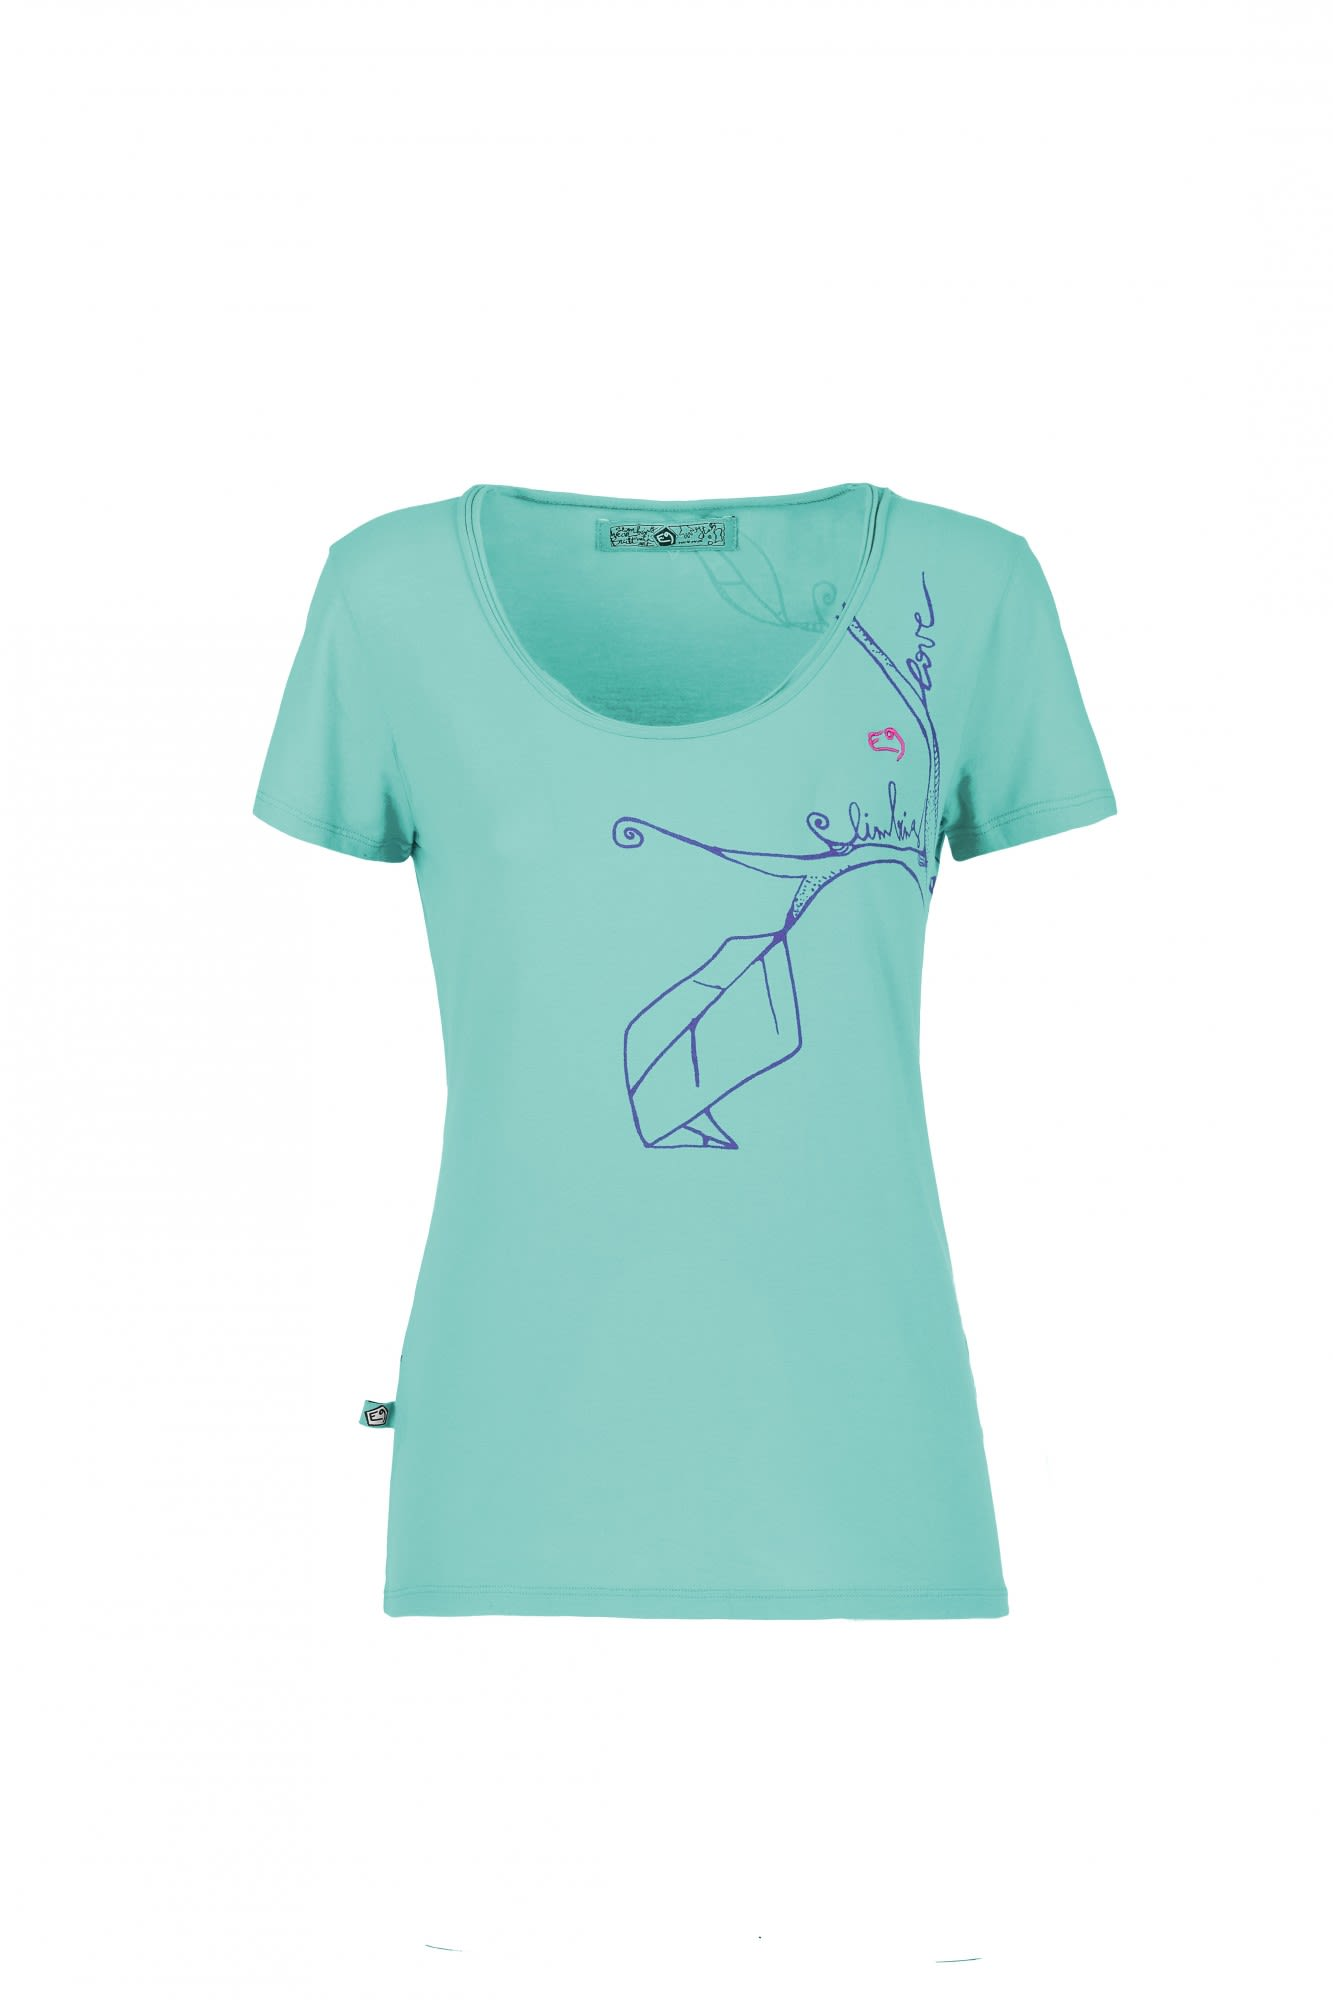 E9 Twig Blau, Female Kurzarm-Shirt, M